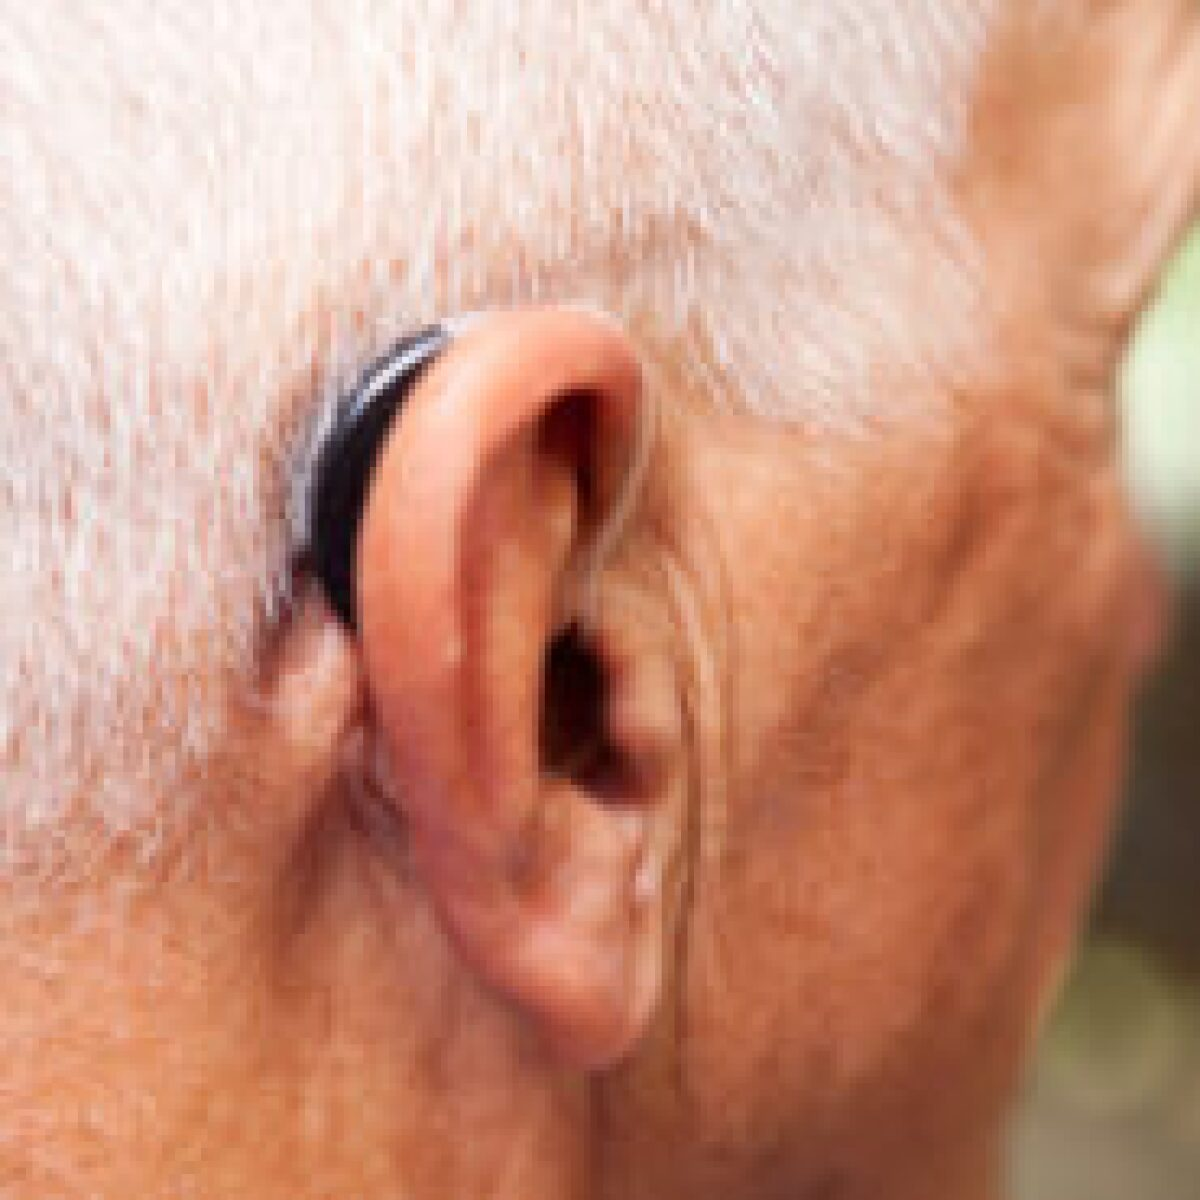 Hearing Aid Prices are Coming Down: Is Now the Time to